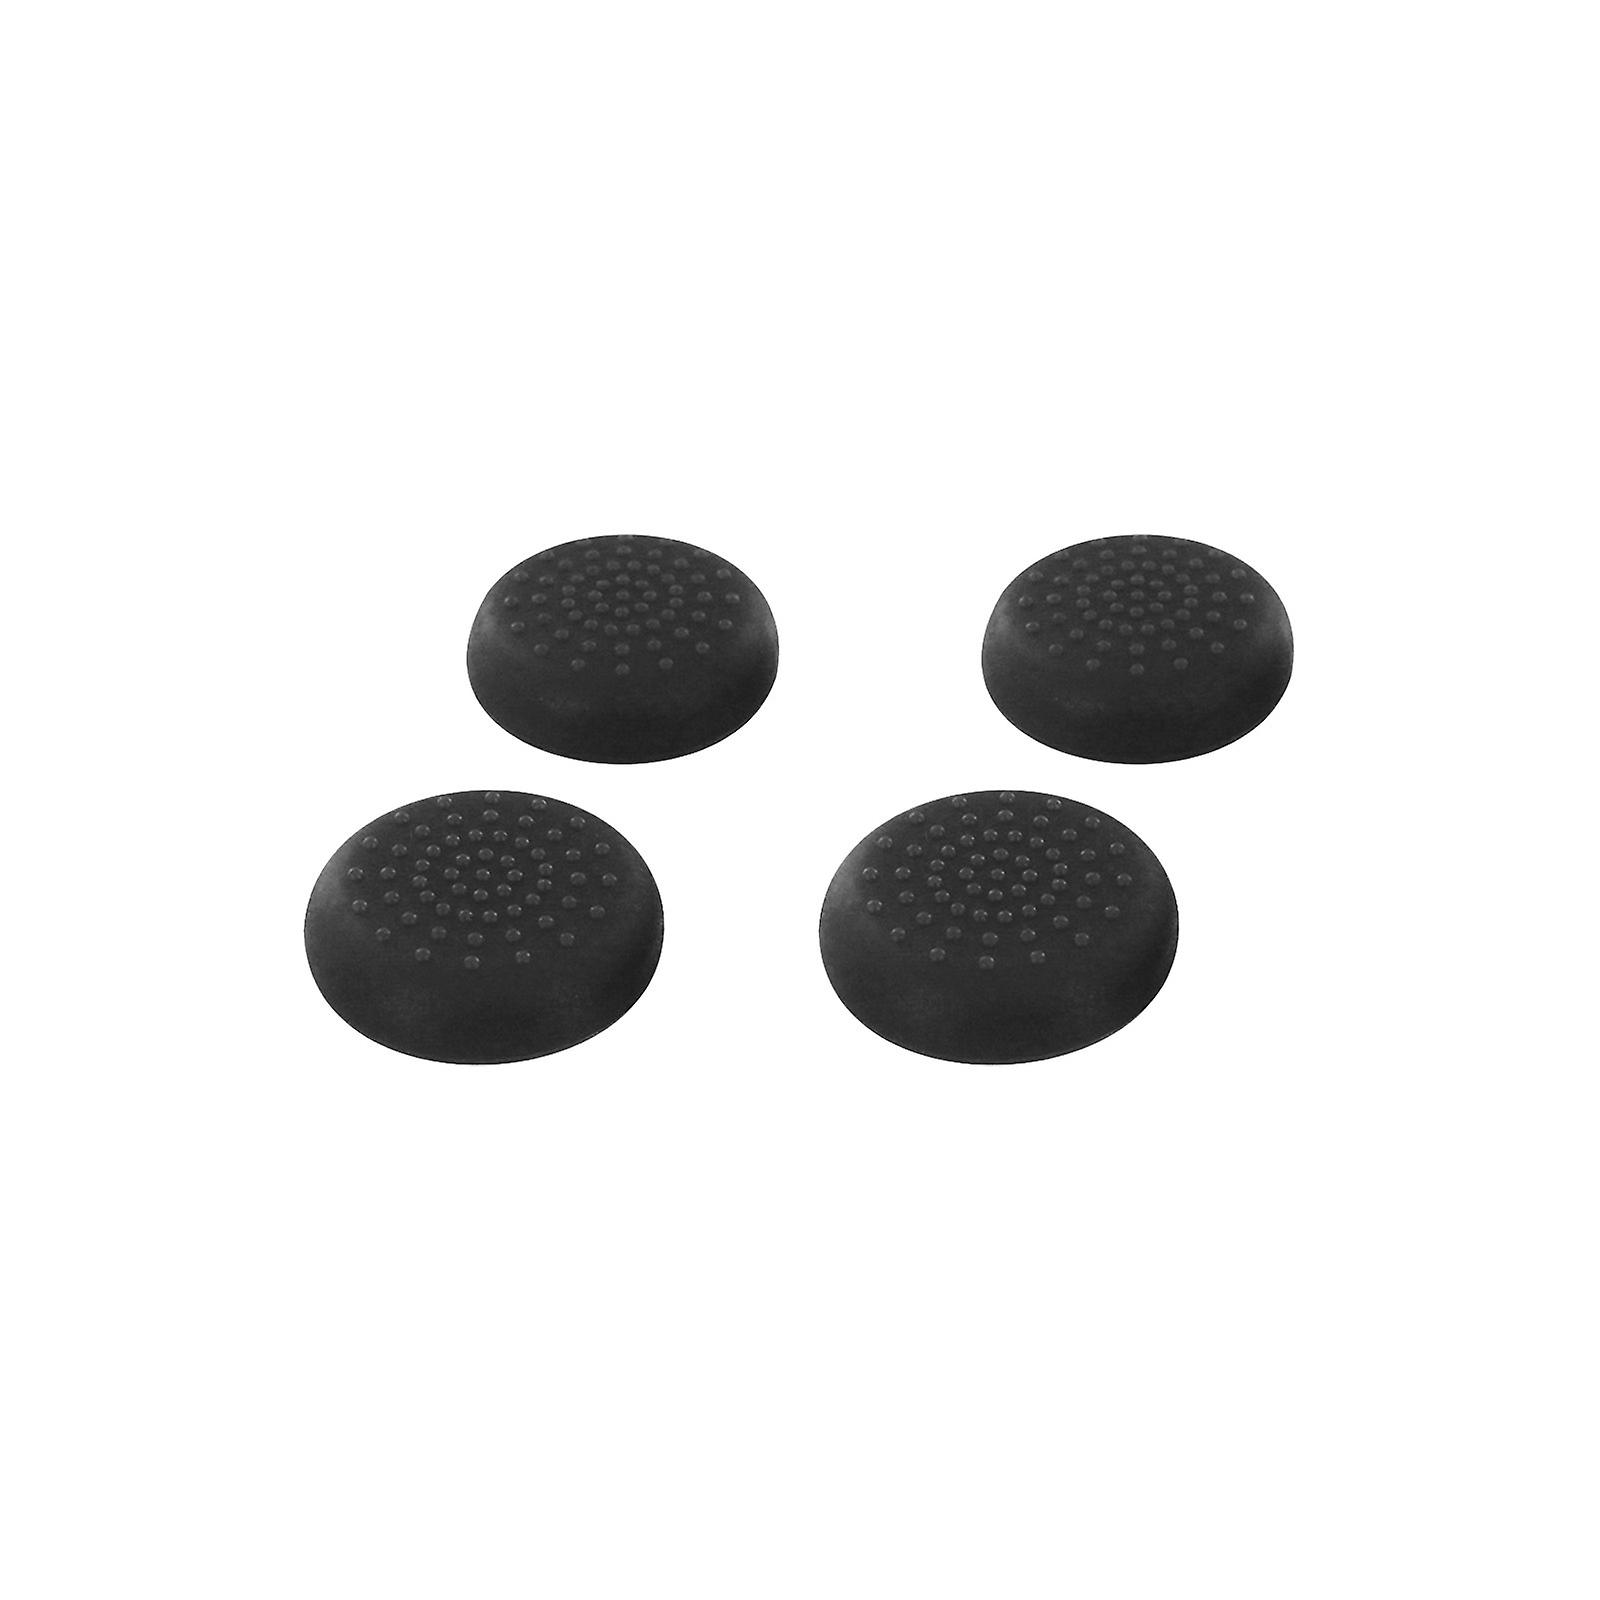 Tpu thumb grip stick caps for nintendo switch pro controller - 4 pack black